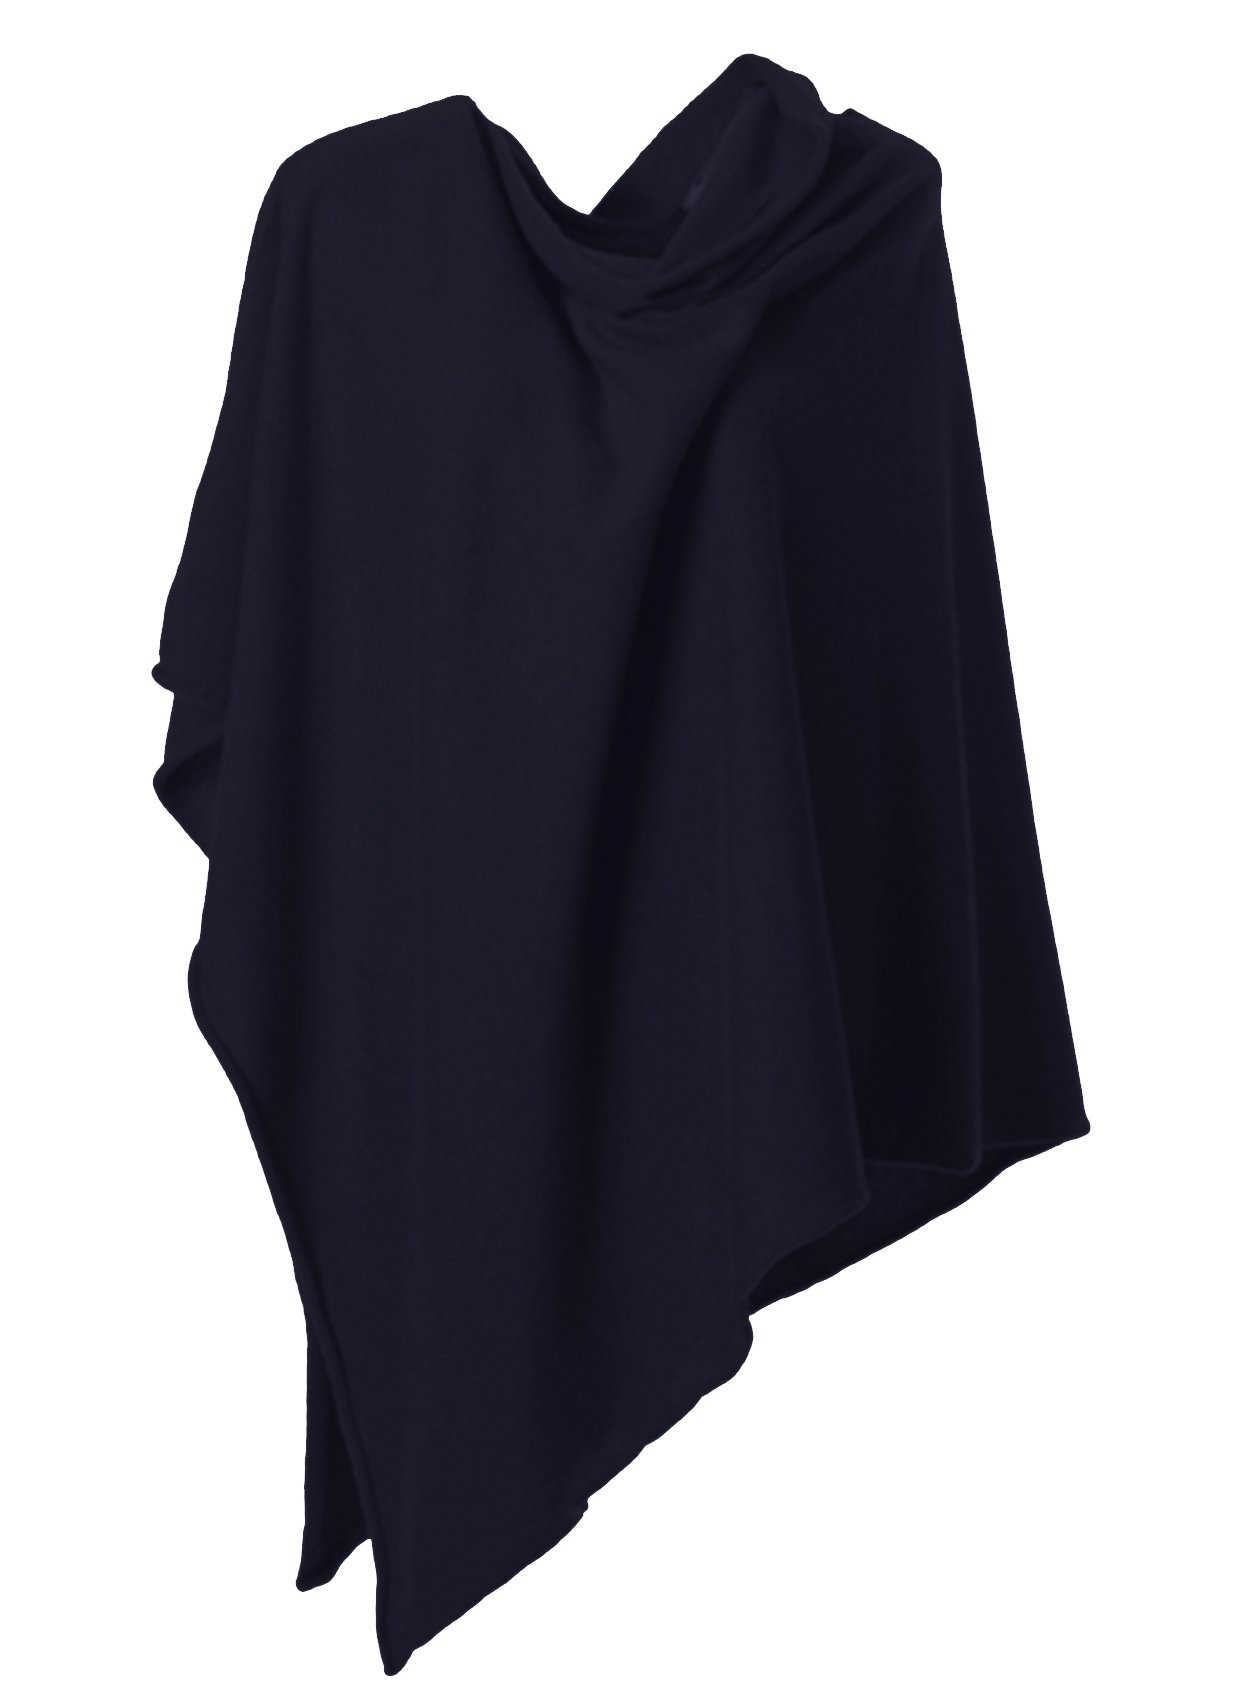 Anna Kristine Asymmetrical 100% Cashmere Draped Poncho Topper - Midnight Black